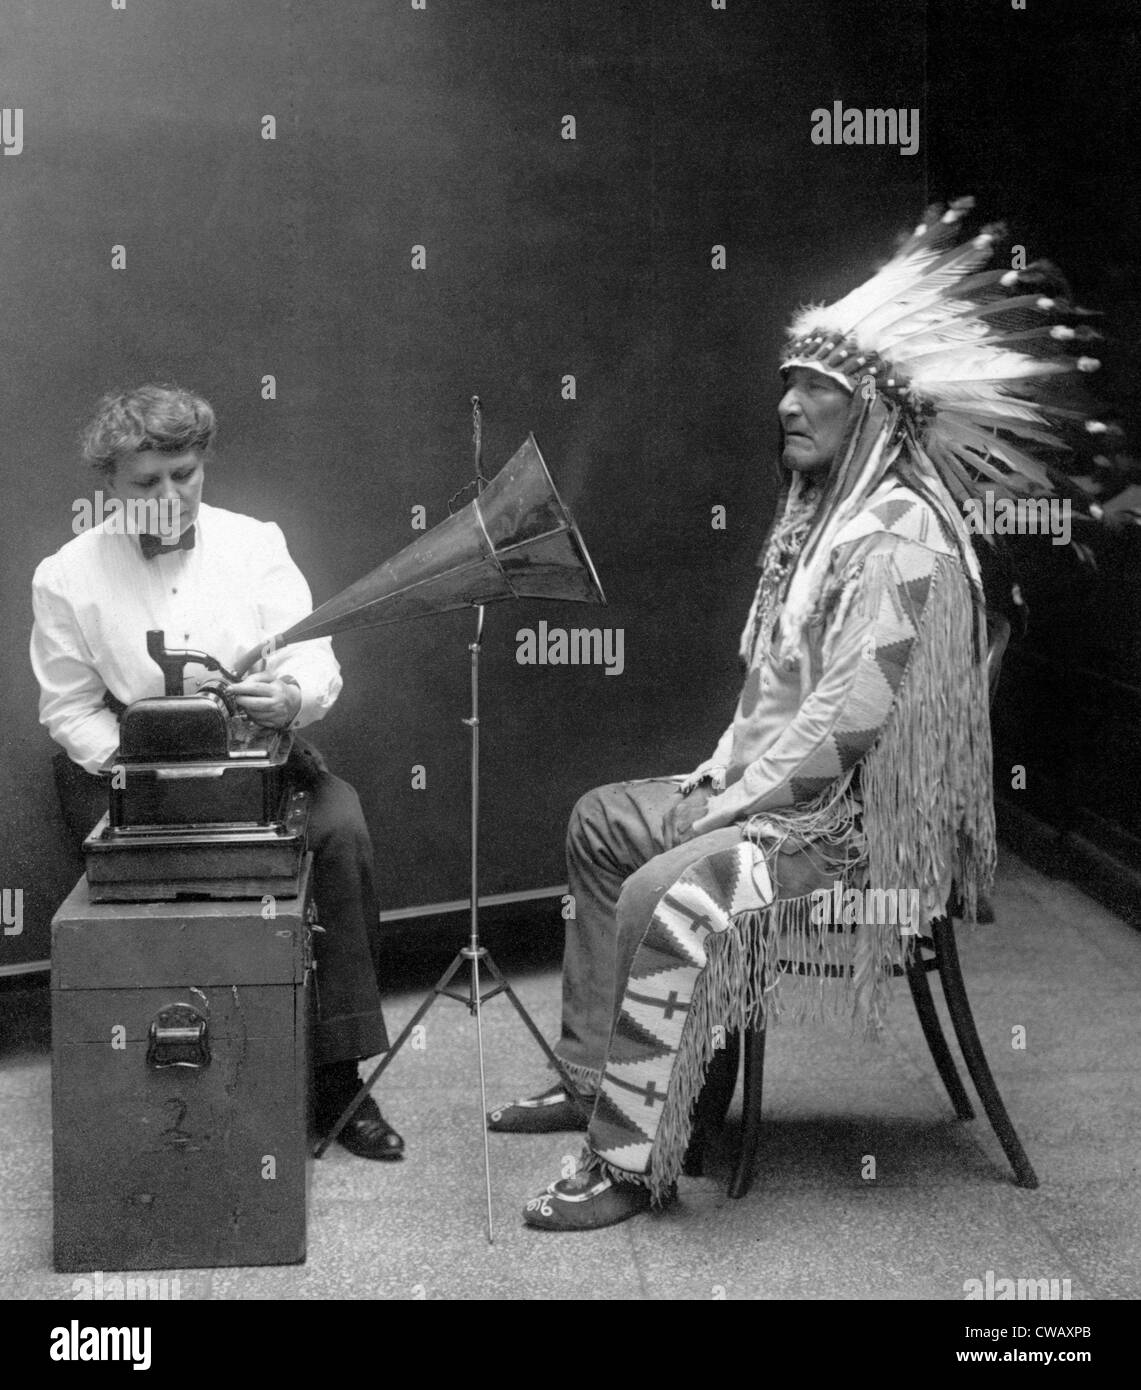 Native American having his voice recorded. Original caption reads: 'Piegan Indian, Mountain Chief, having his - Stock Image